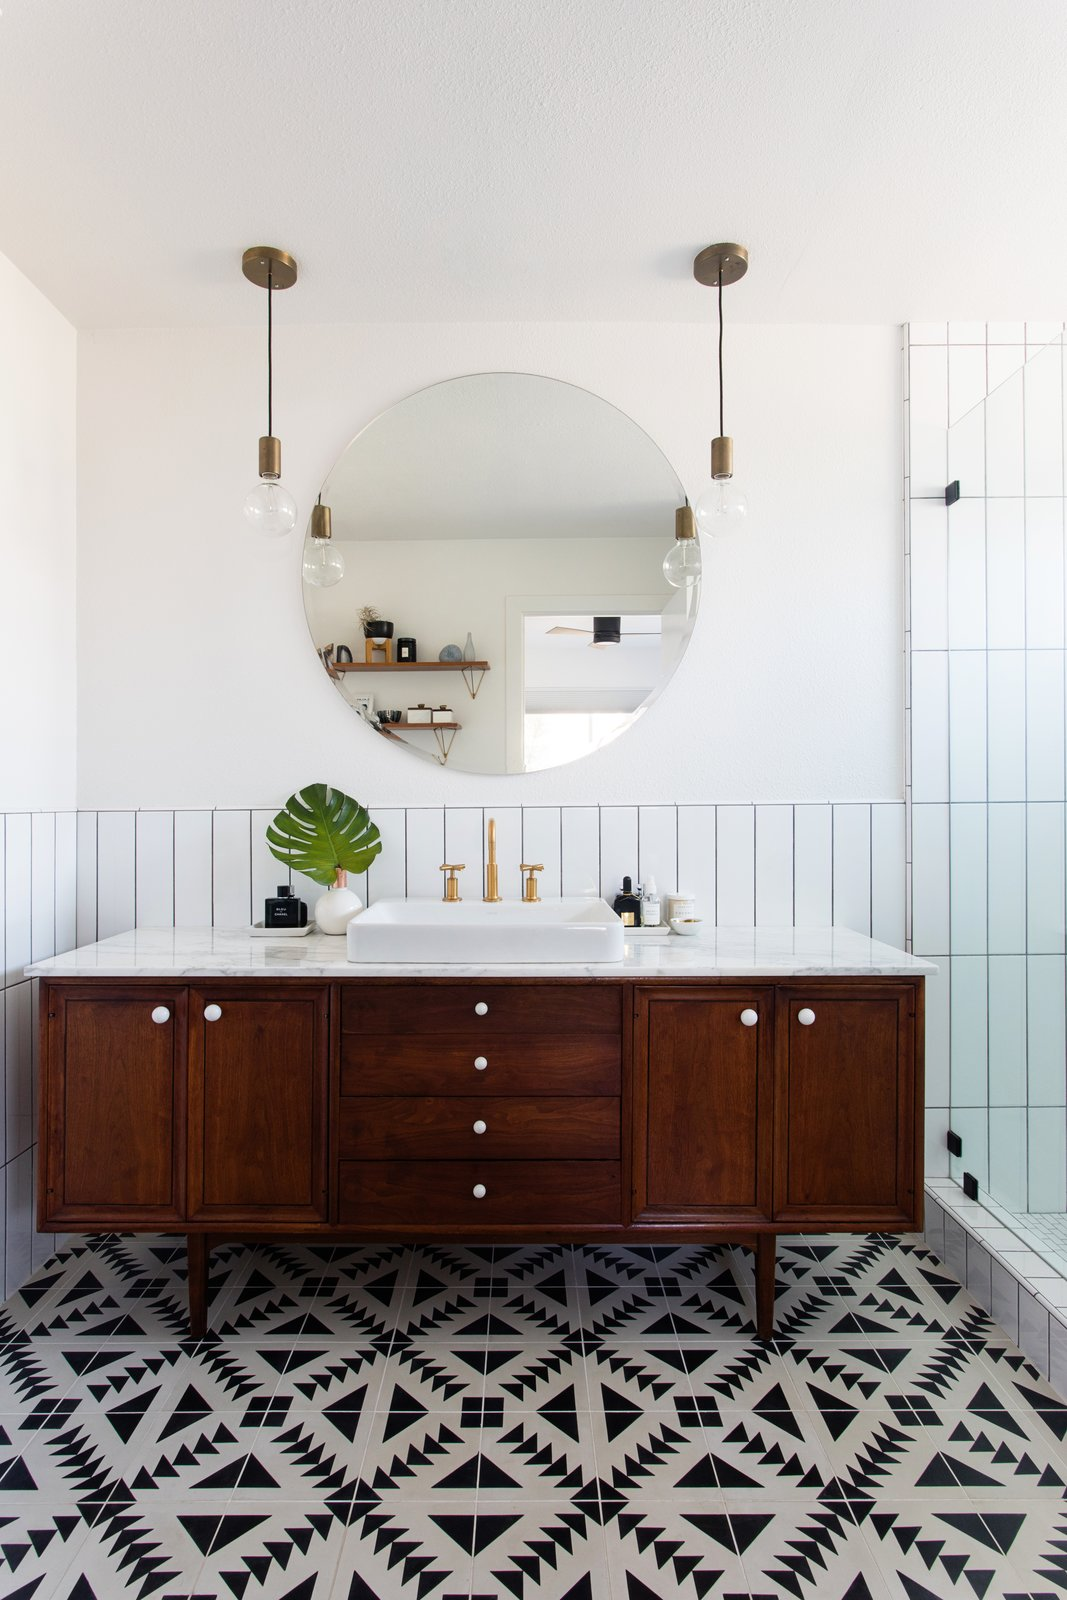 Kitchen Bath Remodel Gives Mid Century Home Modern Updates: Photo 11 Of 12 In Before & After: A Neglected 1960s Ranch